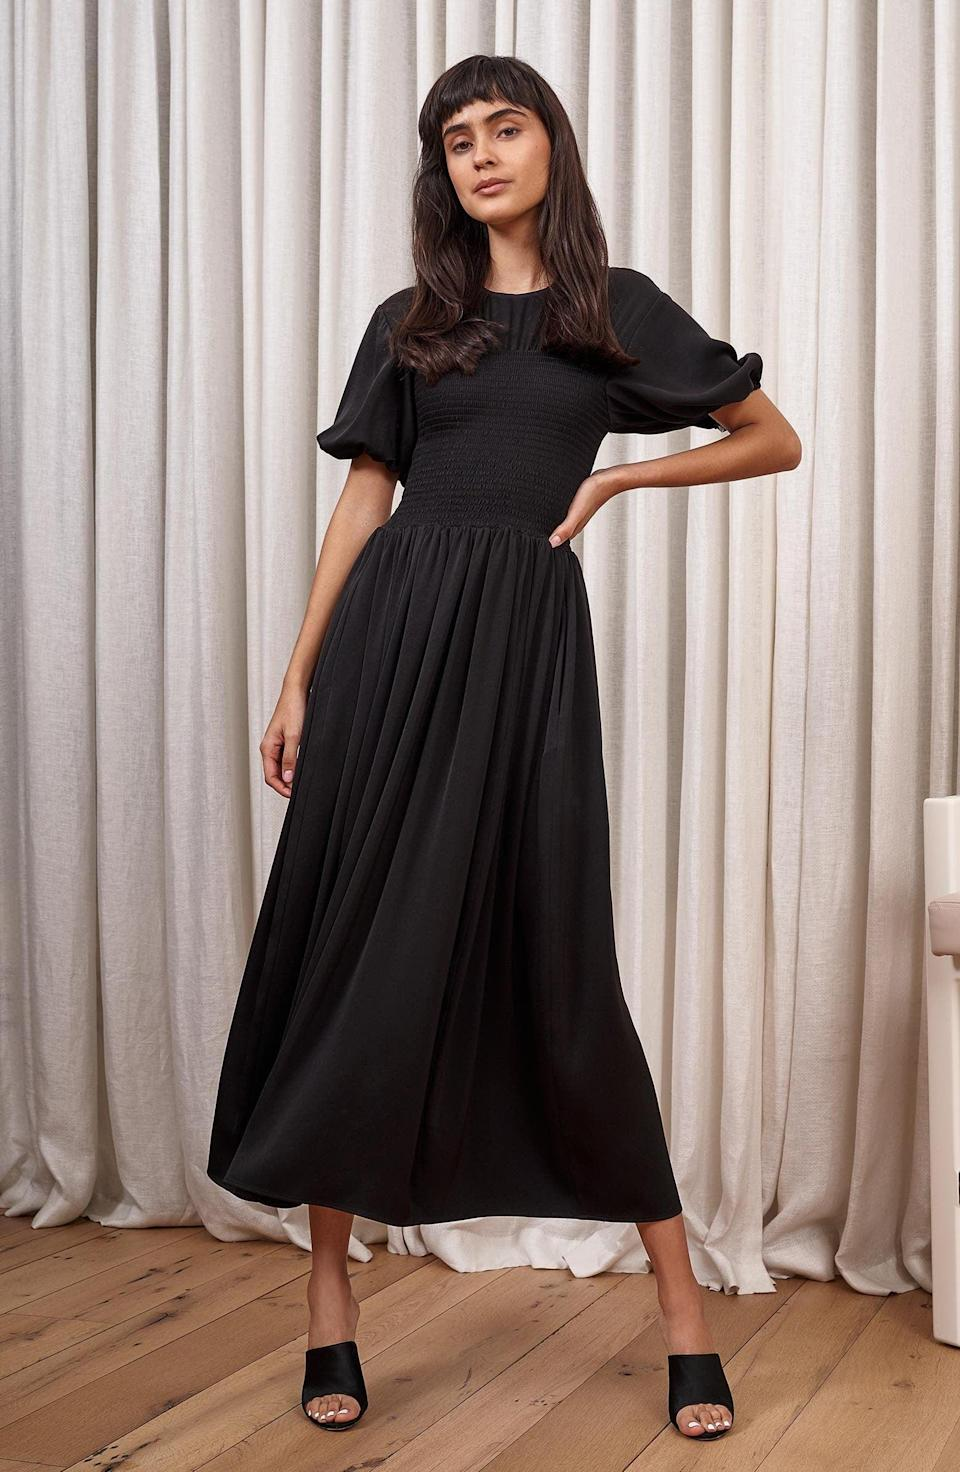 <p>This <span>La Ligne Smocked Bodice Puff Sleeve Maxi Dress</span> ($237, originally $395) is far from boring, thanks to the puff sleeve drama and fitted upper bodice. We like that the bottom half is flowy and easygoing.</p>